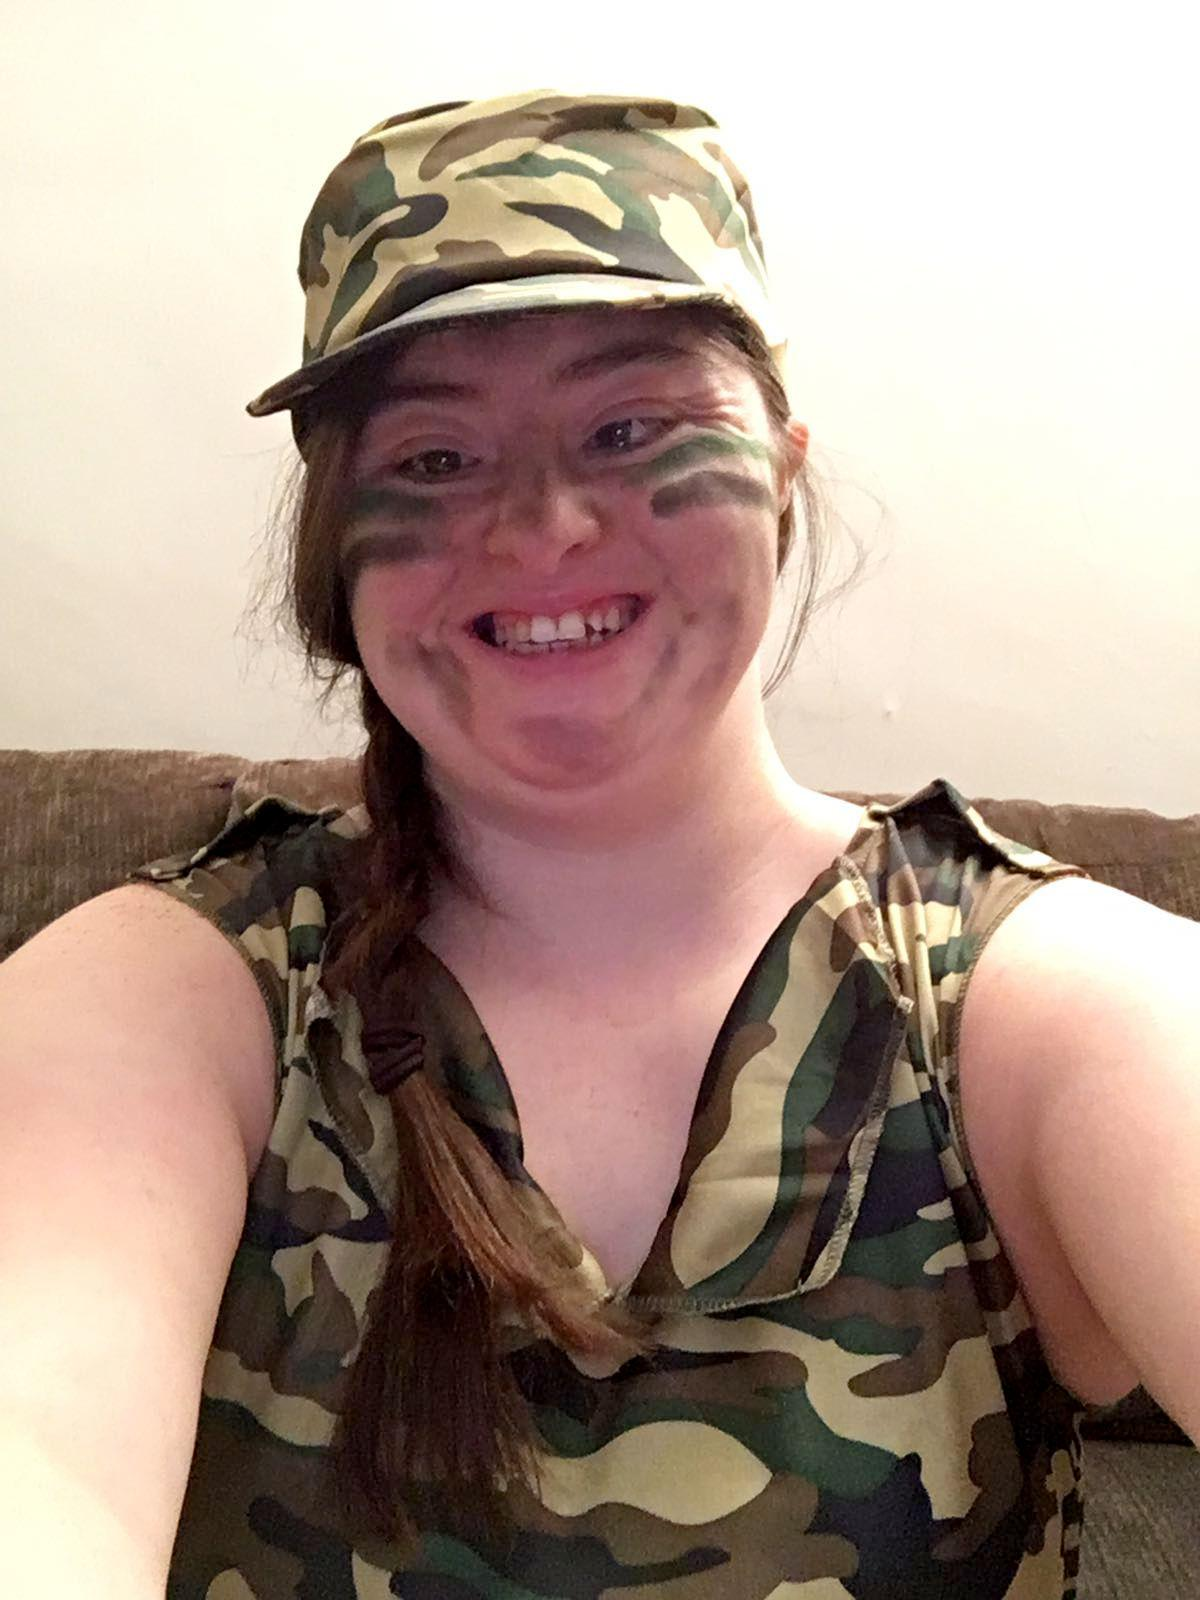 Hilly in camoflage clothes.